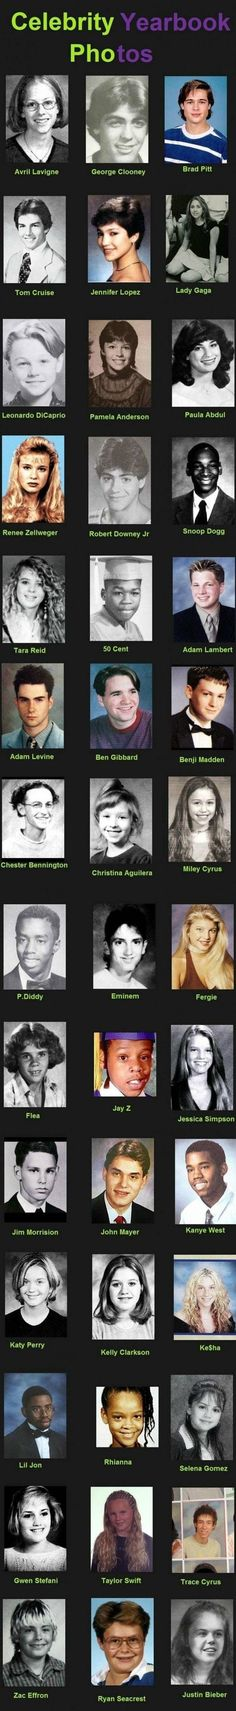 "Celebrity Yearbook Photos - Hilarious   Some of these celebrities I can still the resemblance, but wait until you get to the last one ""Justin Bieber"" all I can say is ???  Source: http://www.awesomeblogisawesome.com/2011/07/hilarious-celebrity-yearbook-photos/"